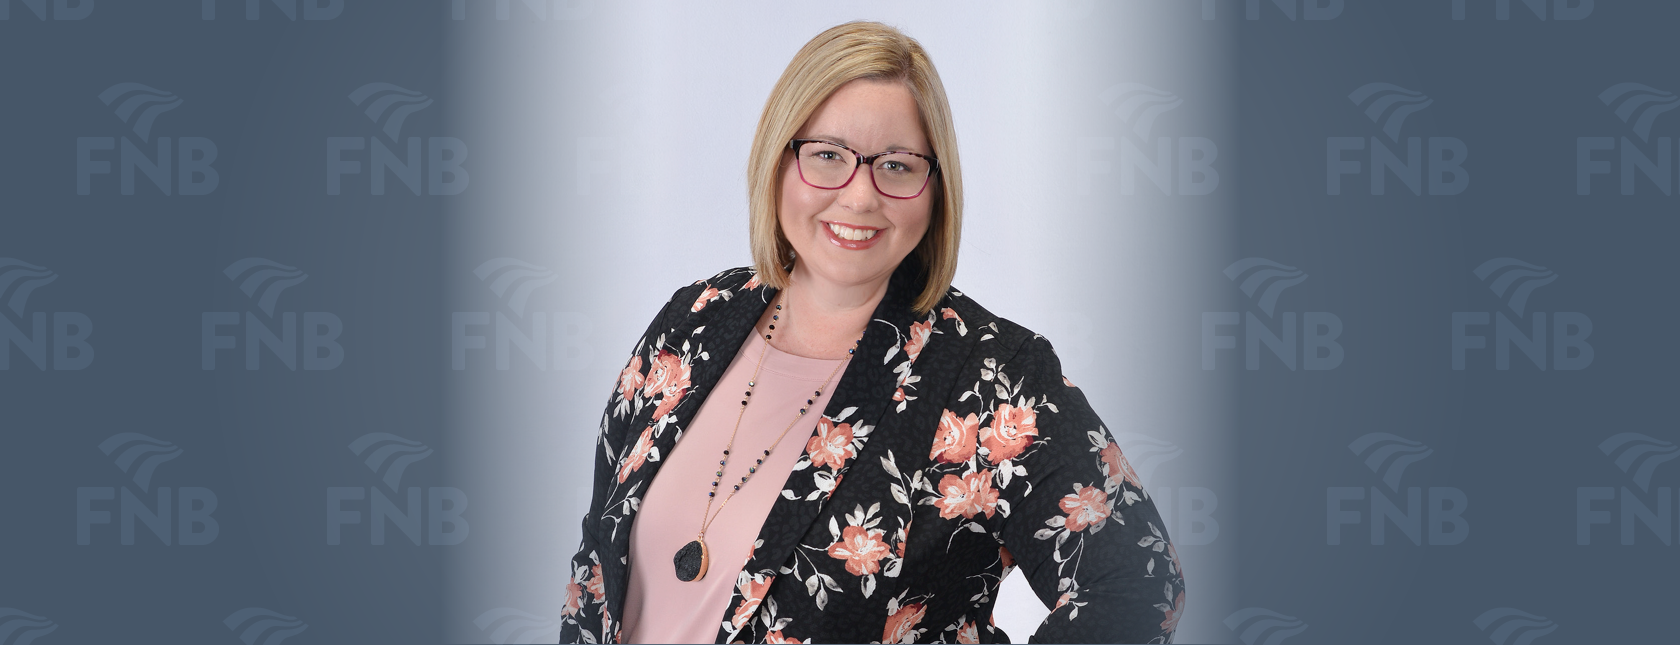 Beth Hood Joins FNB Bank